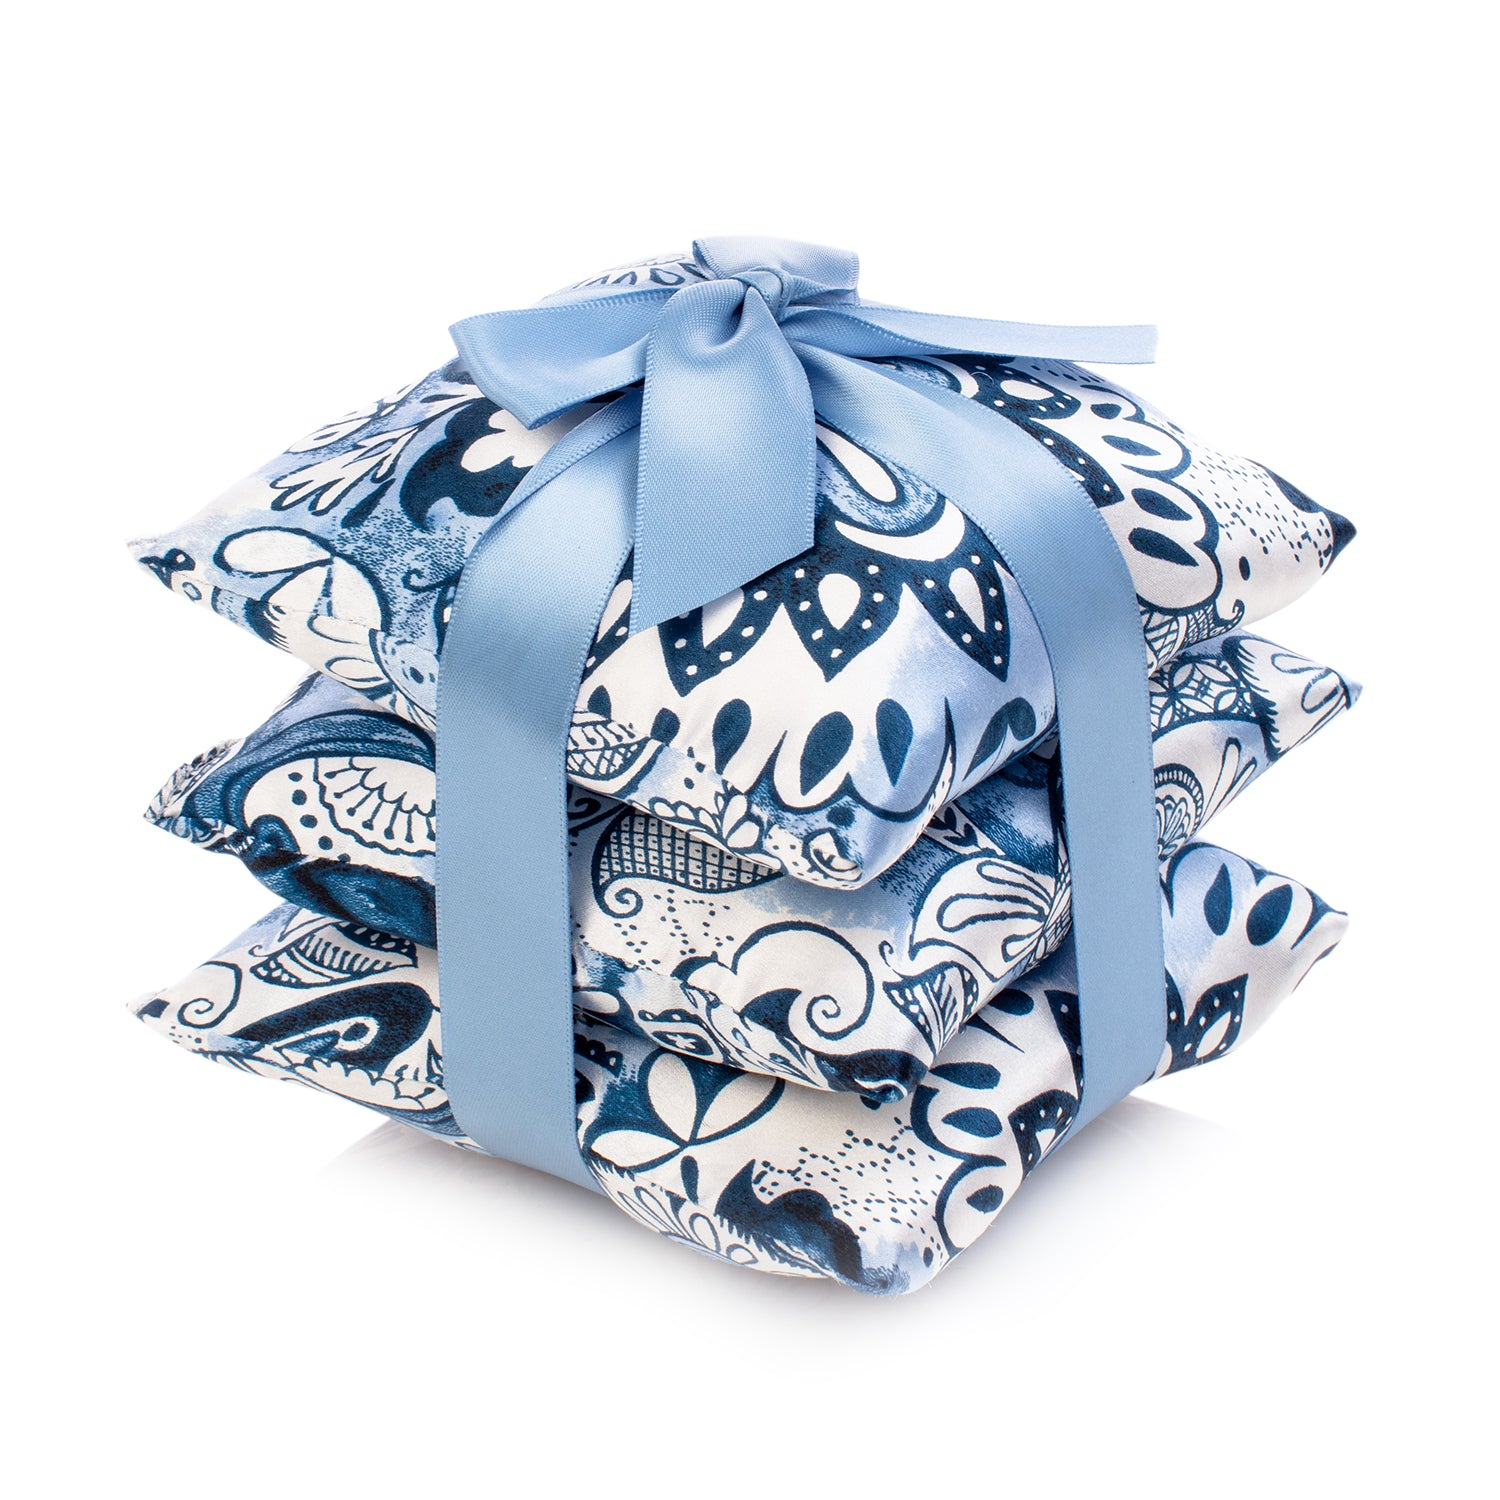 Delft Silk Sachet Set